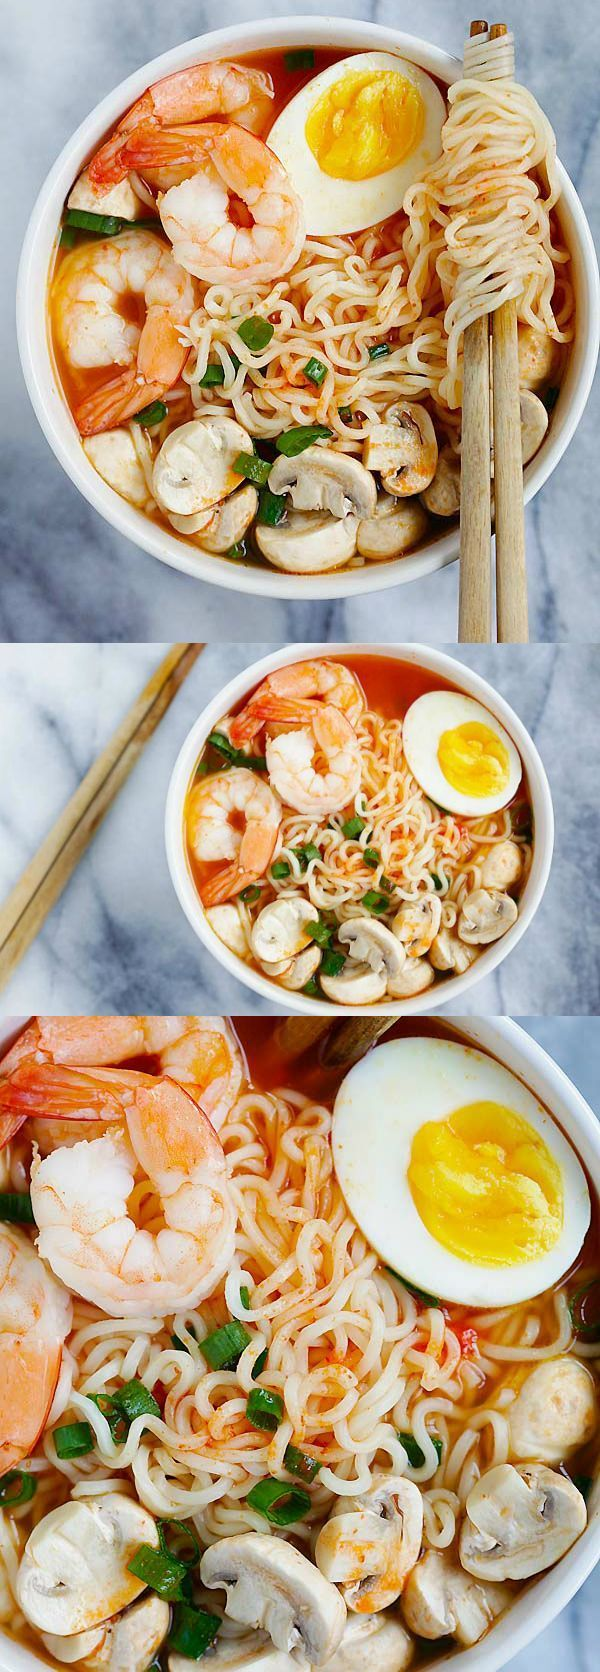 Ramen – the best homemade ramen ever with spicy Sriracha broth and yummy toppings. So easy and takes only 15 minutes |